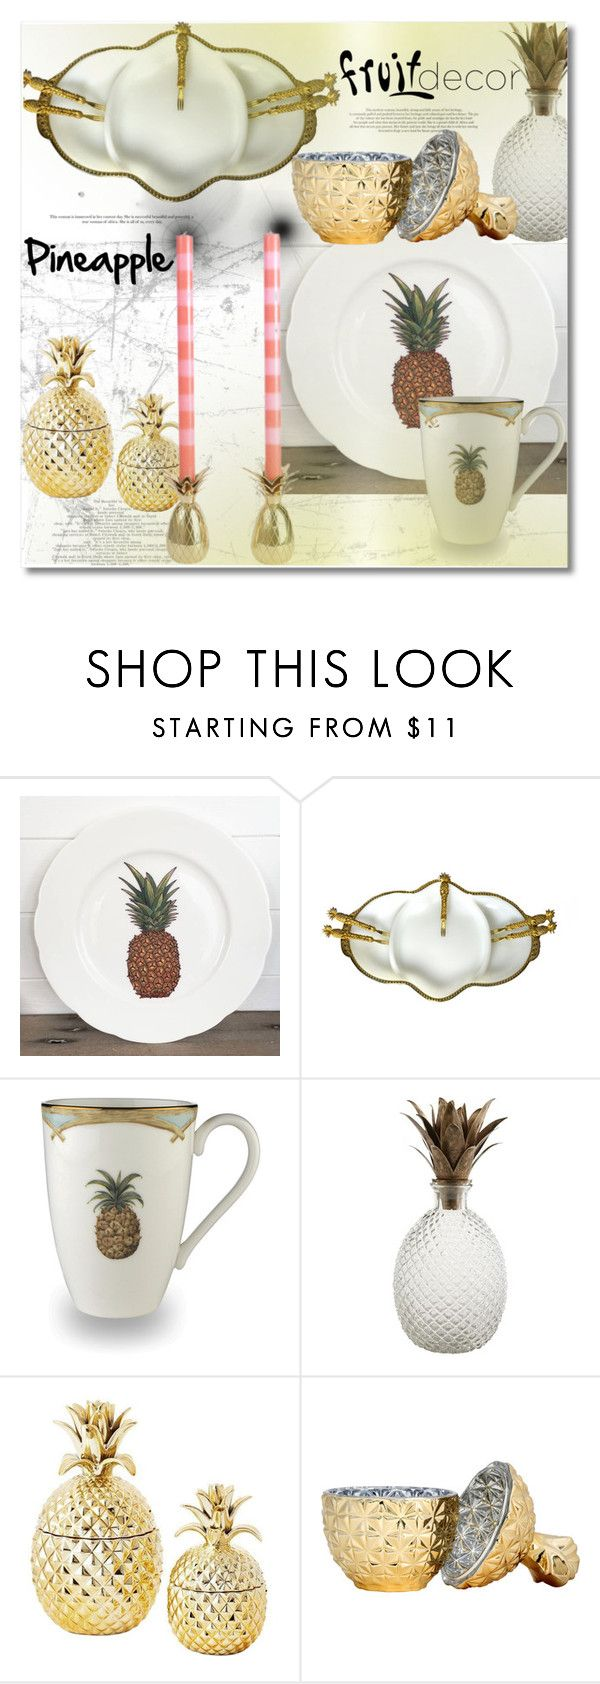 """Fruit Decor Pineapple"" by vkmd ❤ liked on Polyvore featuring interior, interiors, interior design, home, home decor, interior decorating, Lenox, Pier 1 Imports, H&M and fruitdecor"